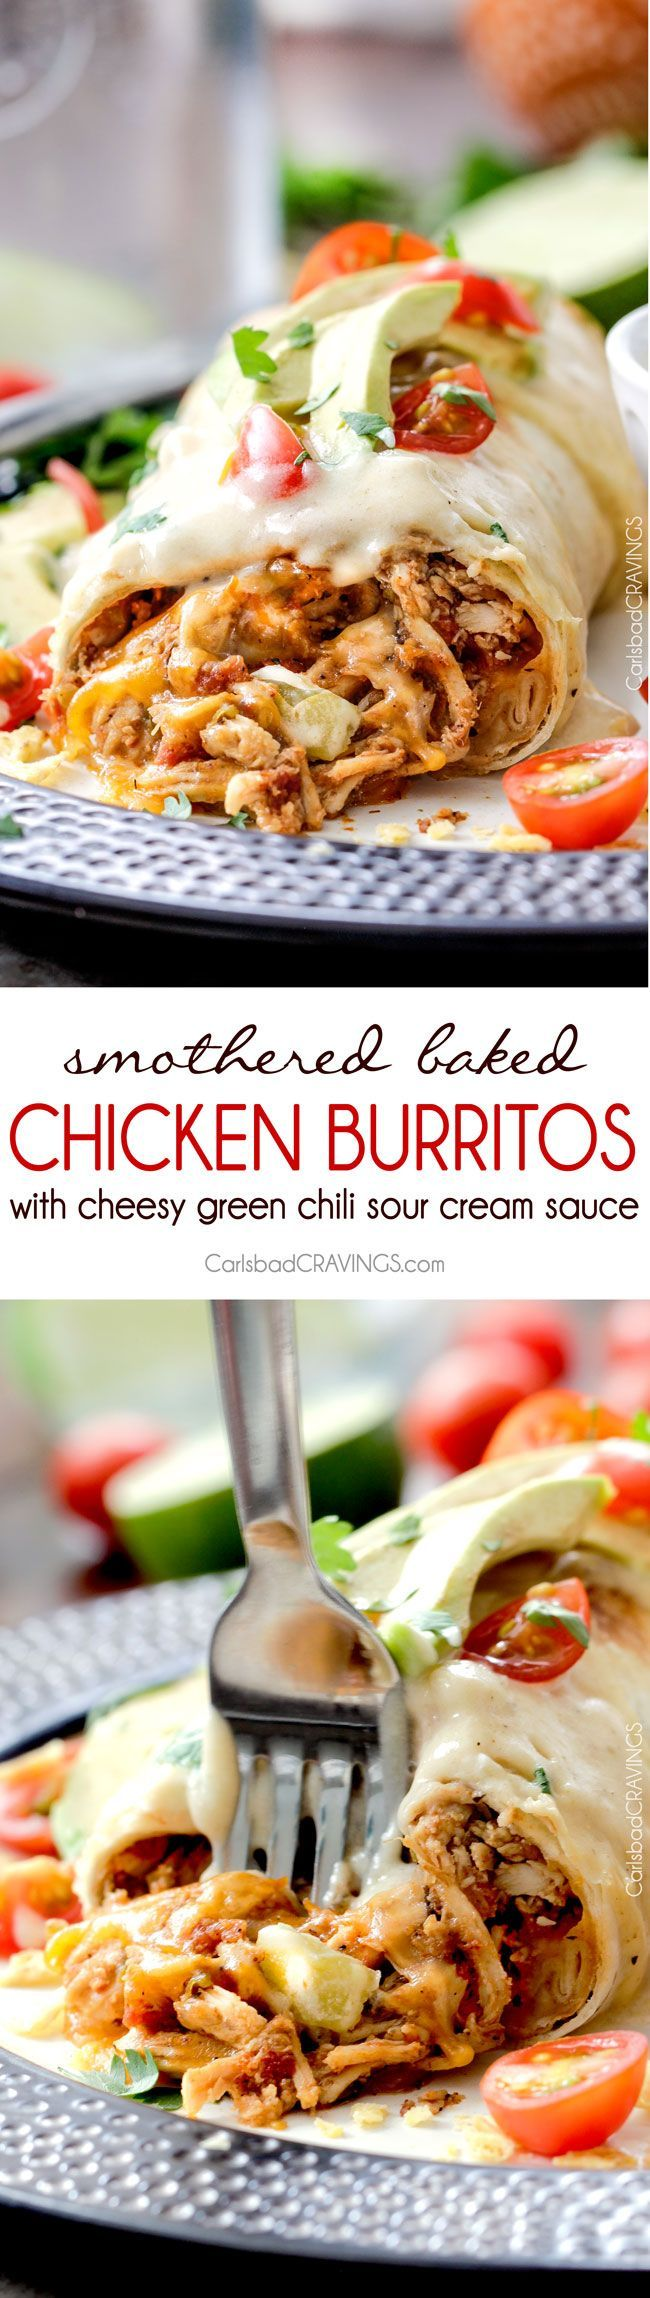 "Smothered Baked Chicken Burritos AKA ""skinny chimichangas"" are better than any restaurant without all the calories! made super easy by stuffing with the BEST slow cooker Mexican chicken and then baked to golden perfection and smothered in most incredible cheesy green chili sour cream sauce. via @carlsbadcraving"